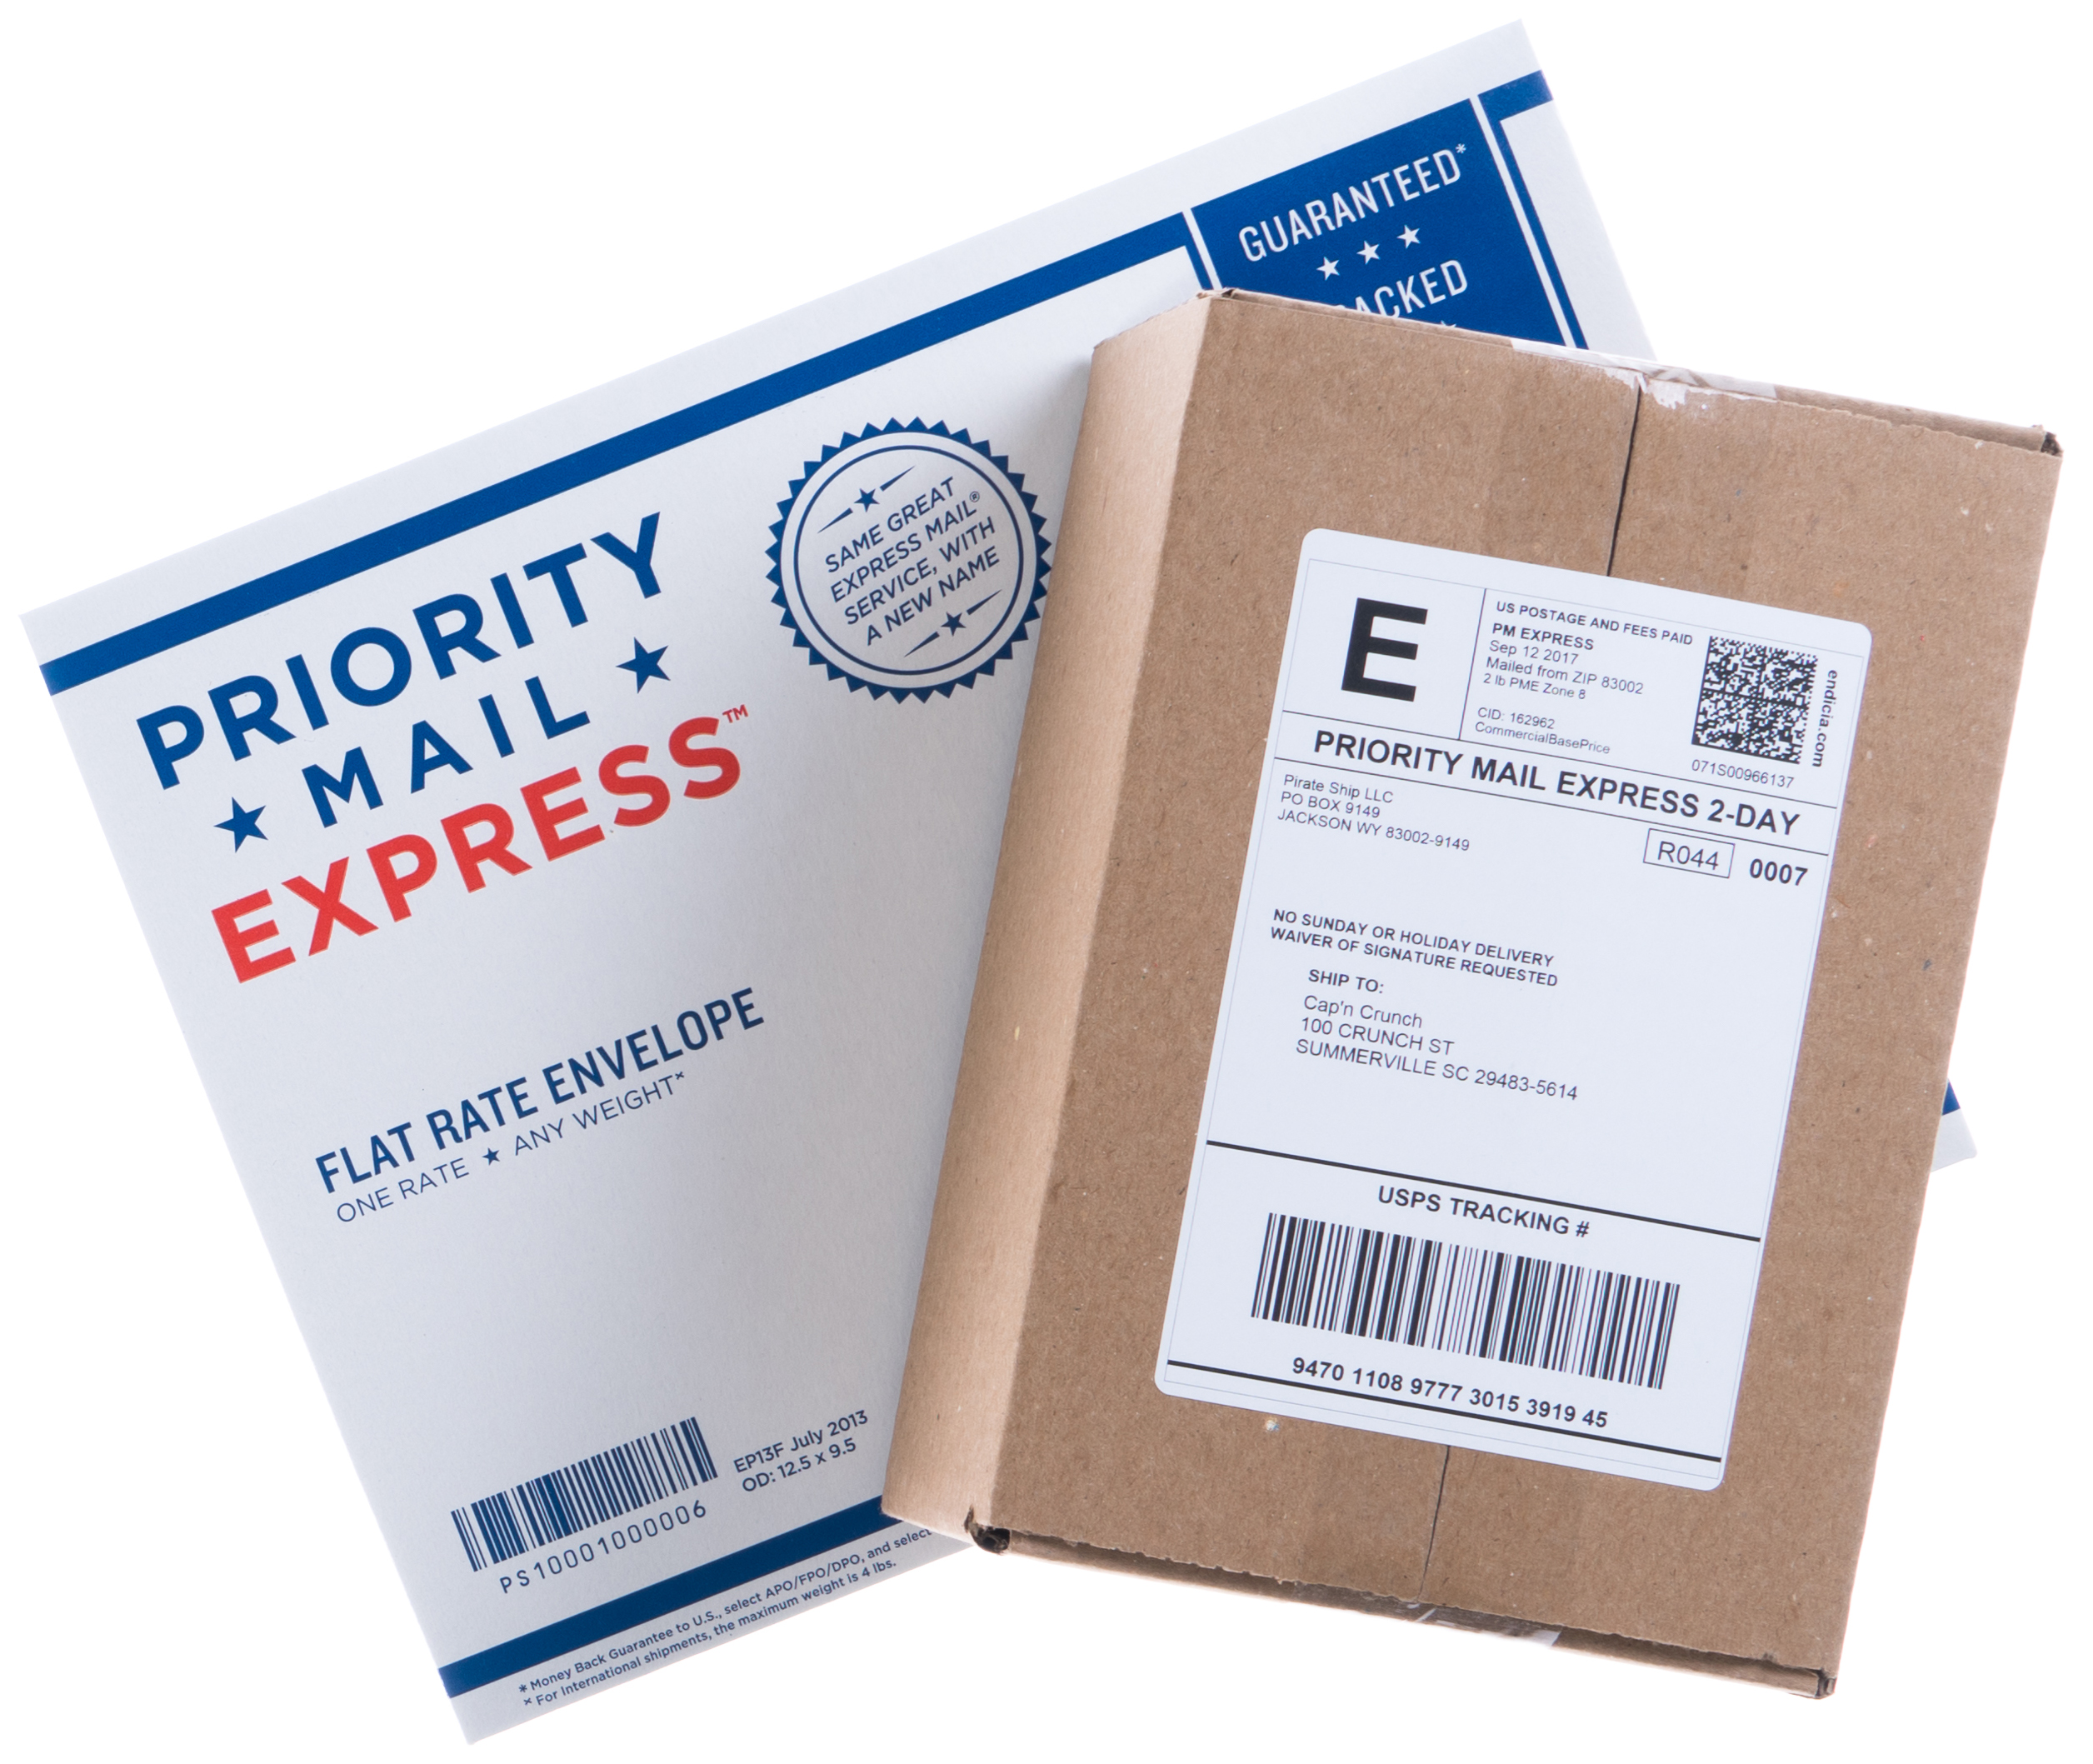 Priority Mail Express Flat Rate Envelope and Box